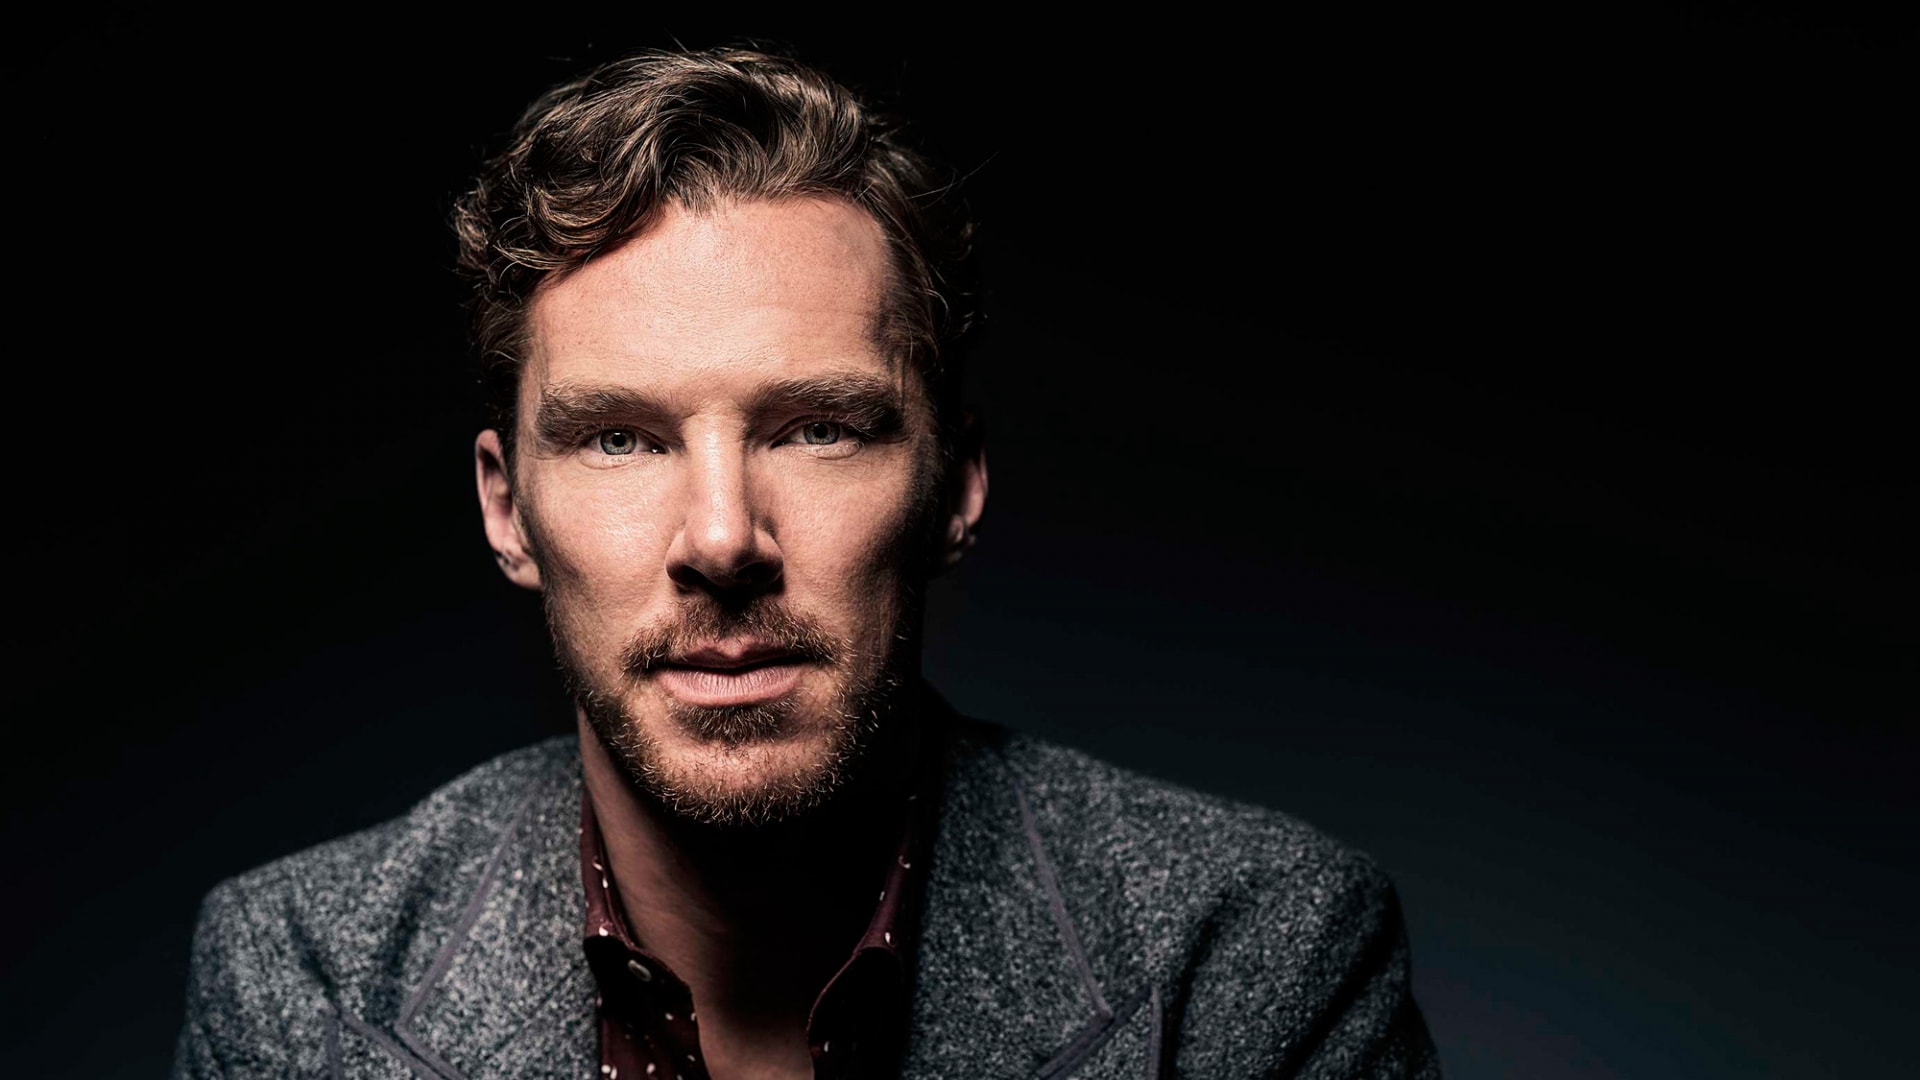 Benedict Cumberbatch Wallpapers hd